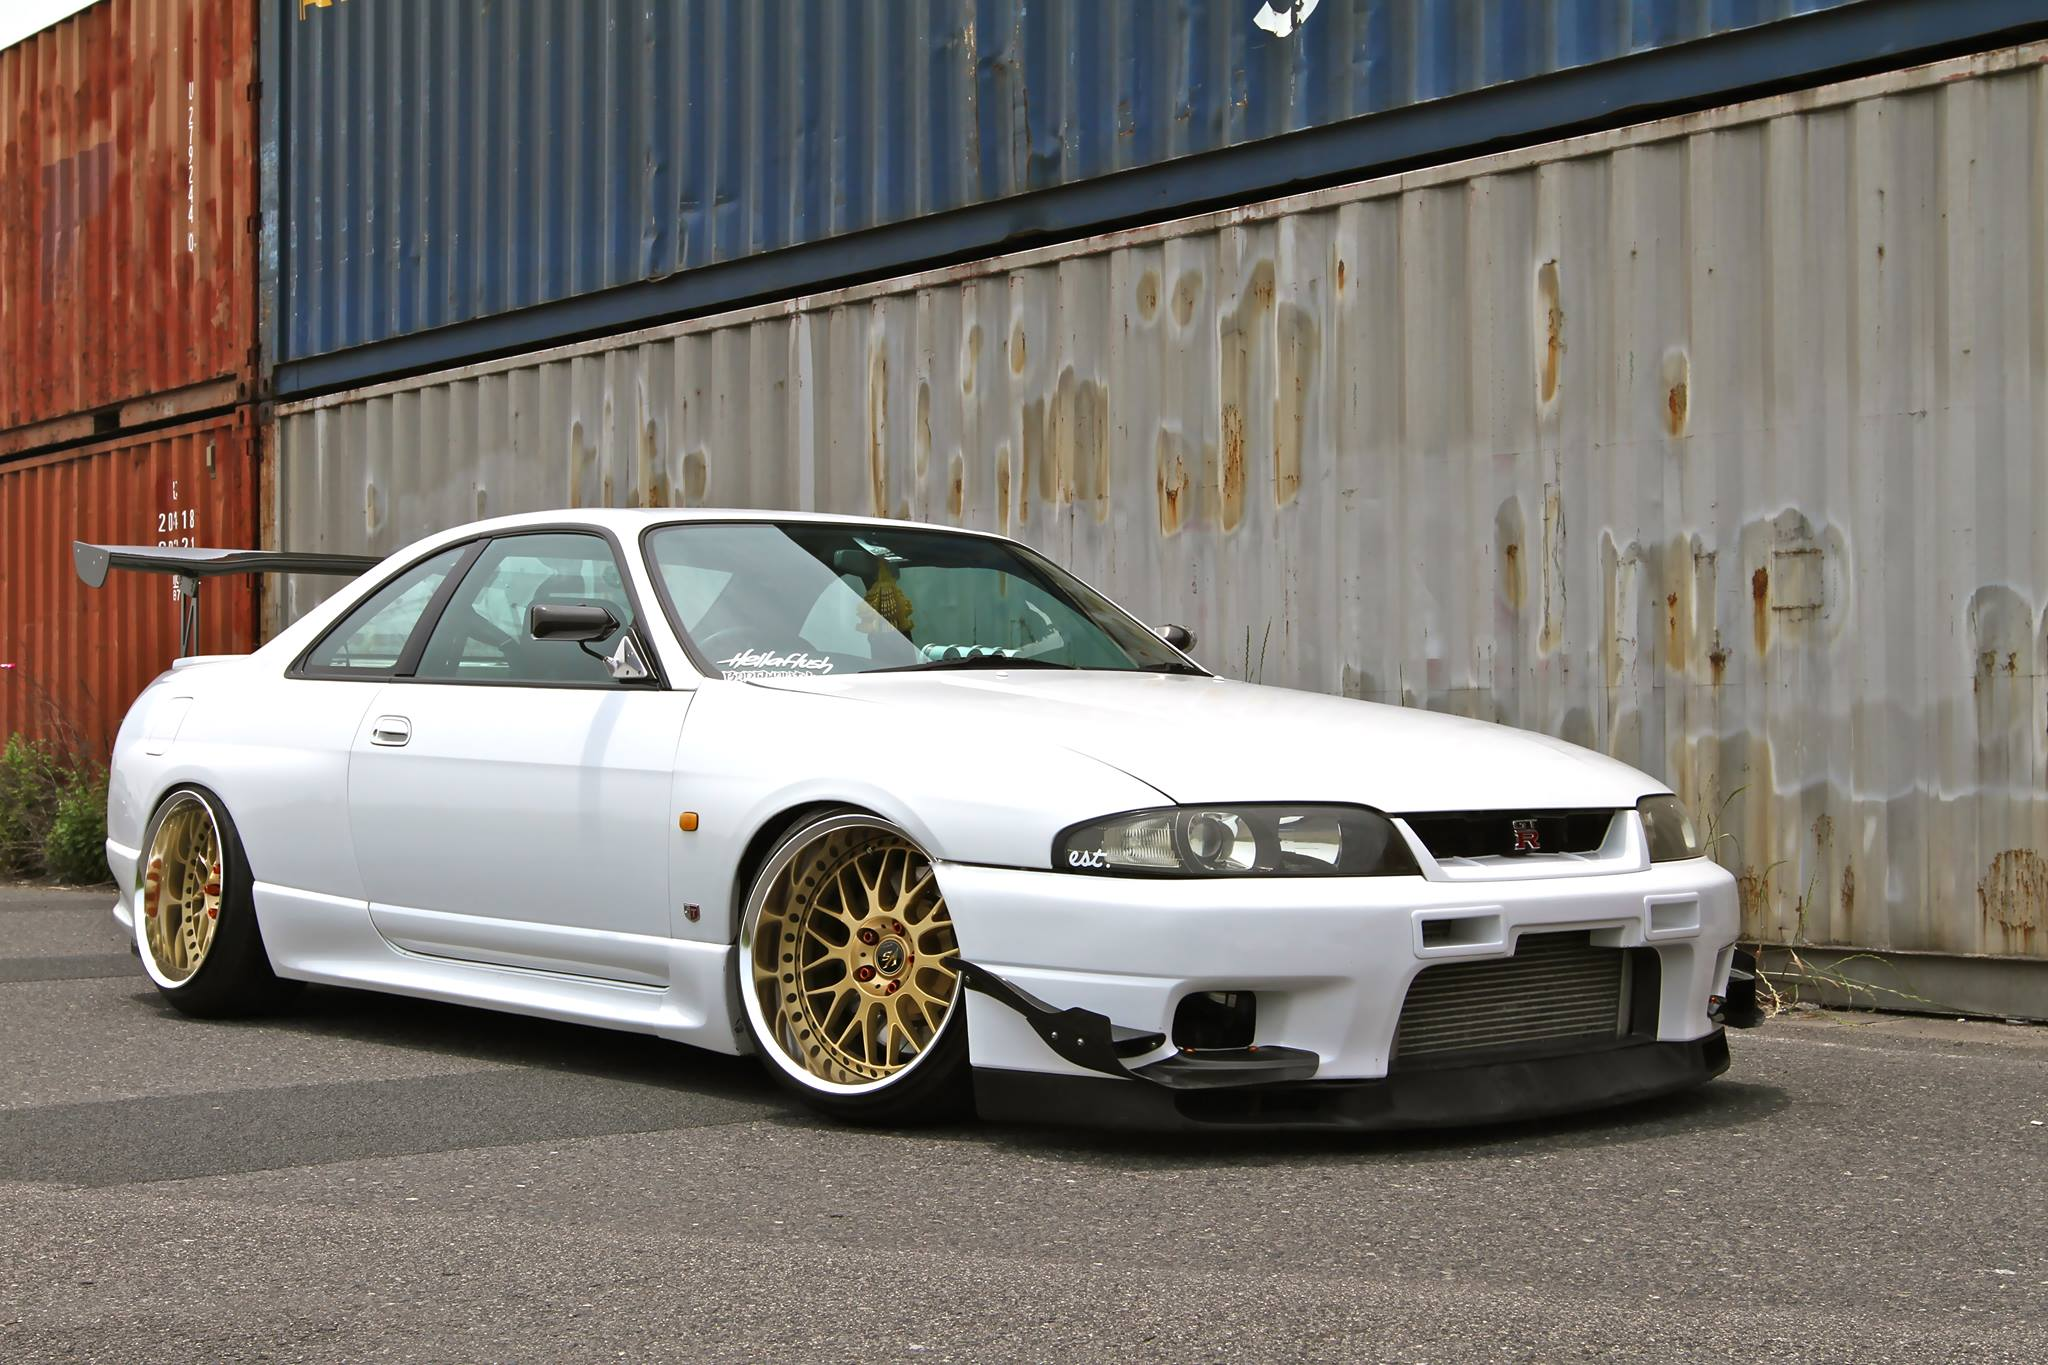 maybe an unpopular opinion but i kinda like the r33 better than the